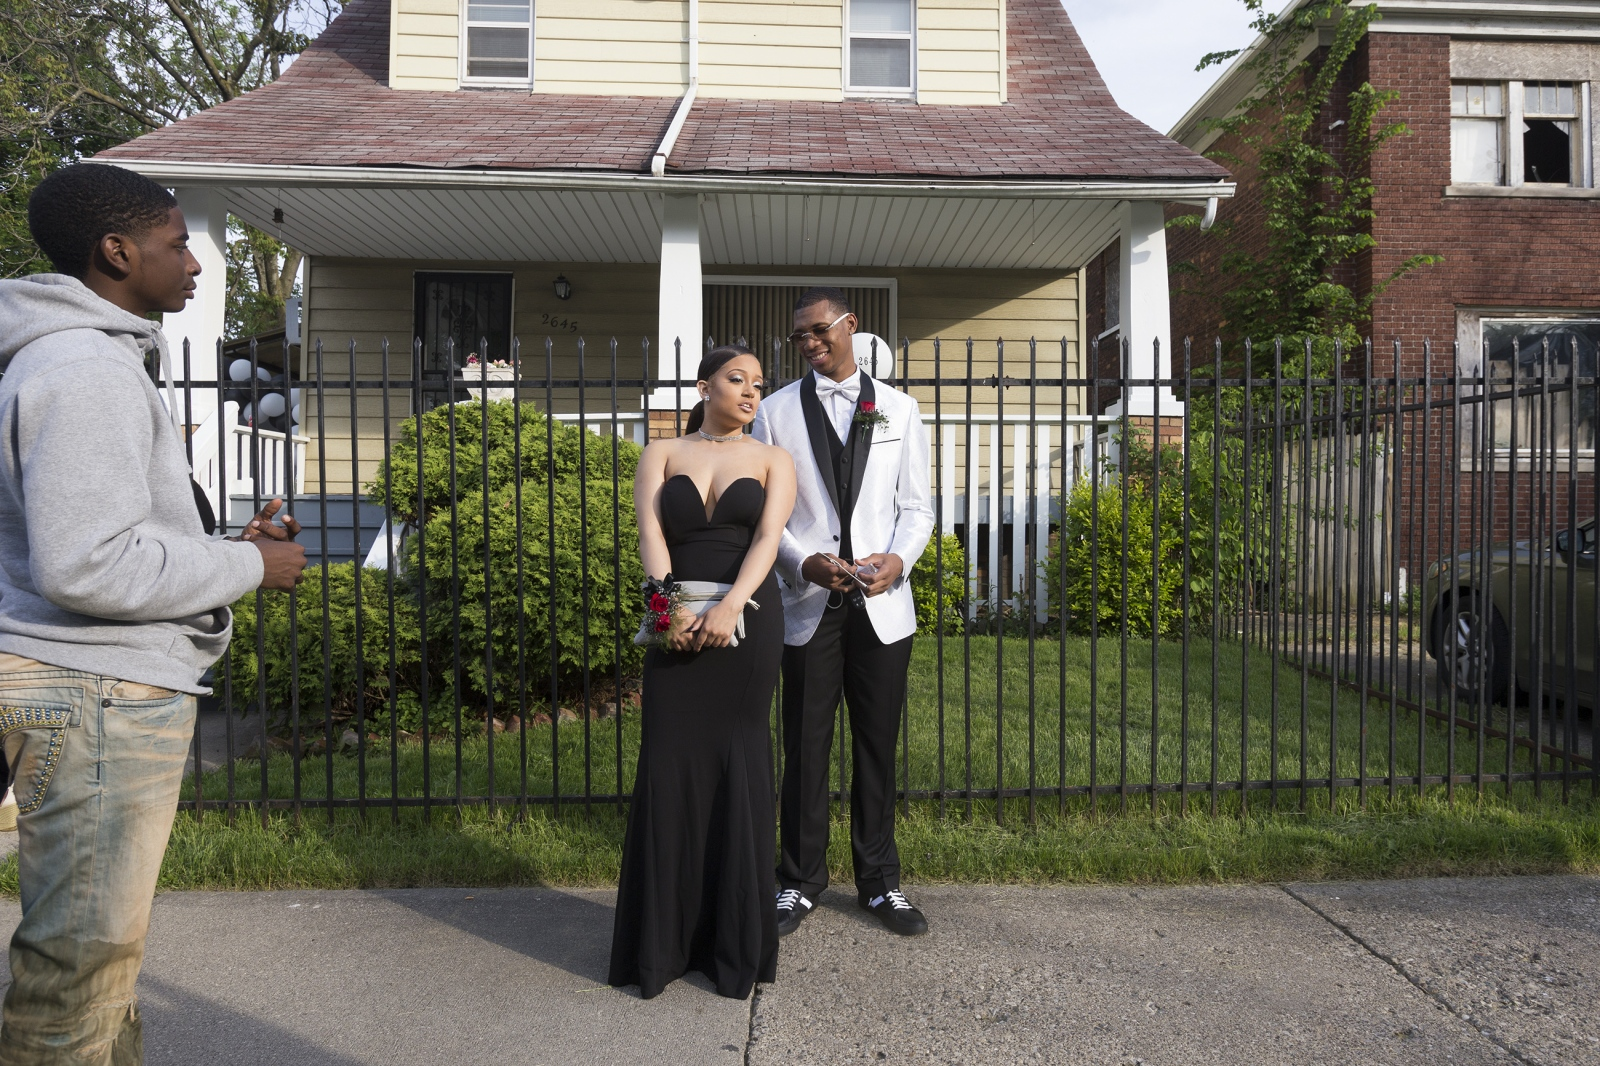 Destiney Drake, 18, left, stands next to her prom date Michael Green, 18, outside Green's house before prom. Green was shot when he was 12 years old while playing basketball on the same street he lives on today. Green graduates this Spring and will go on to play basketball for Miles College in Alabama.